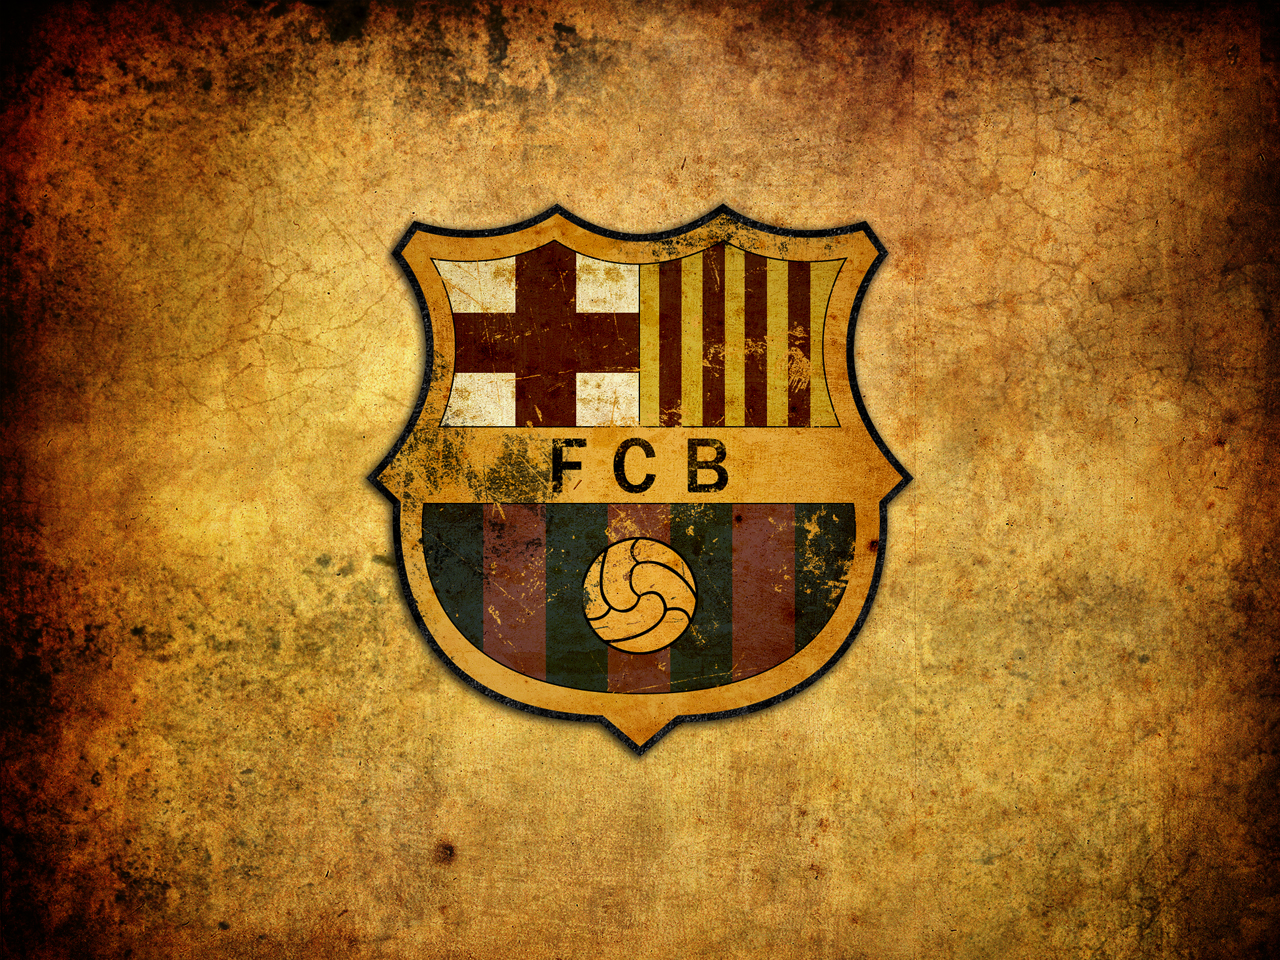 Wallpapers Fcb Download Wallpaper DaWallpaperz 1280x960